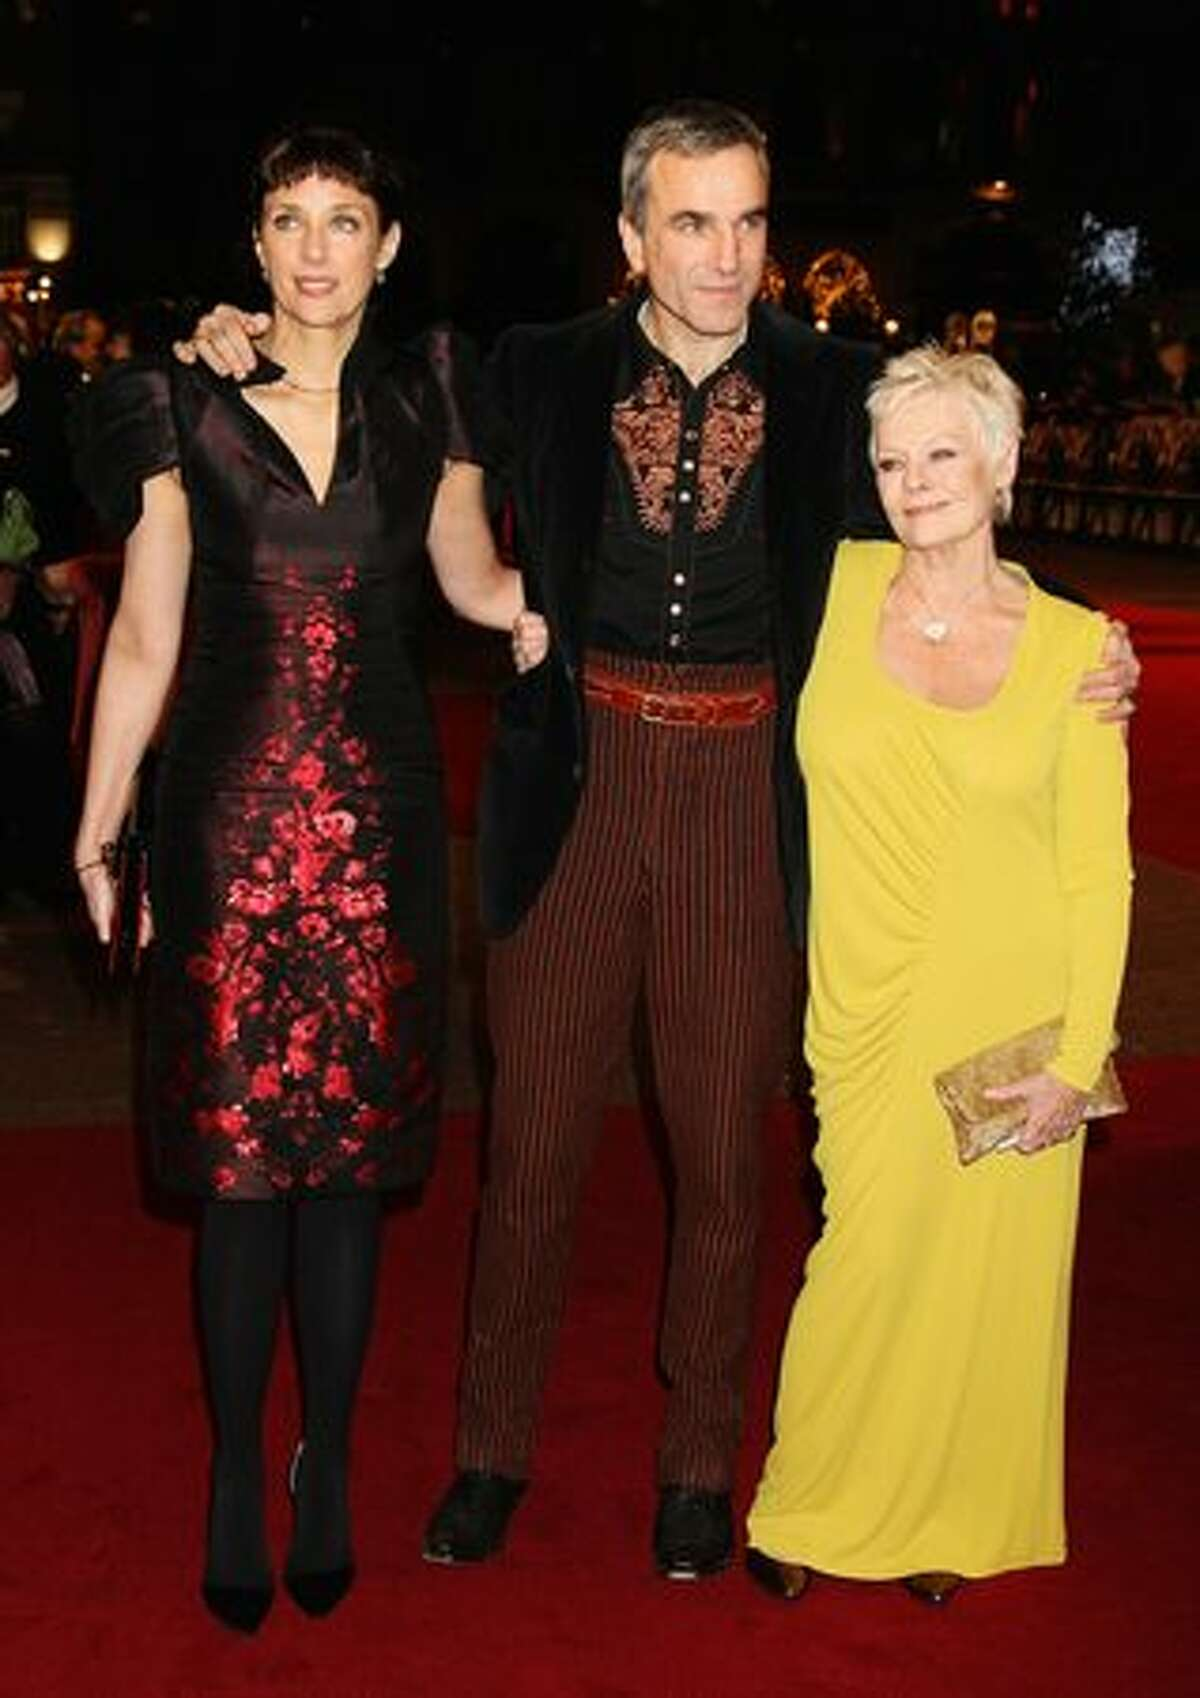 Rebecca Miller, Daniel Day-Lewis and actress Dame Judi Dench attends the World Premiere of 'Nine.'